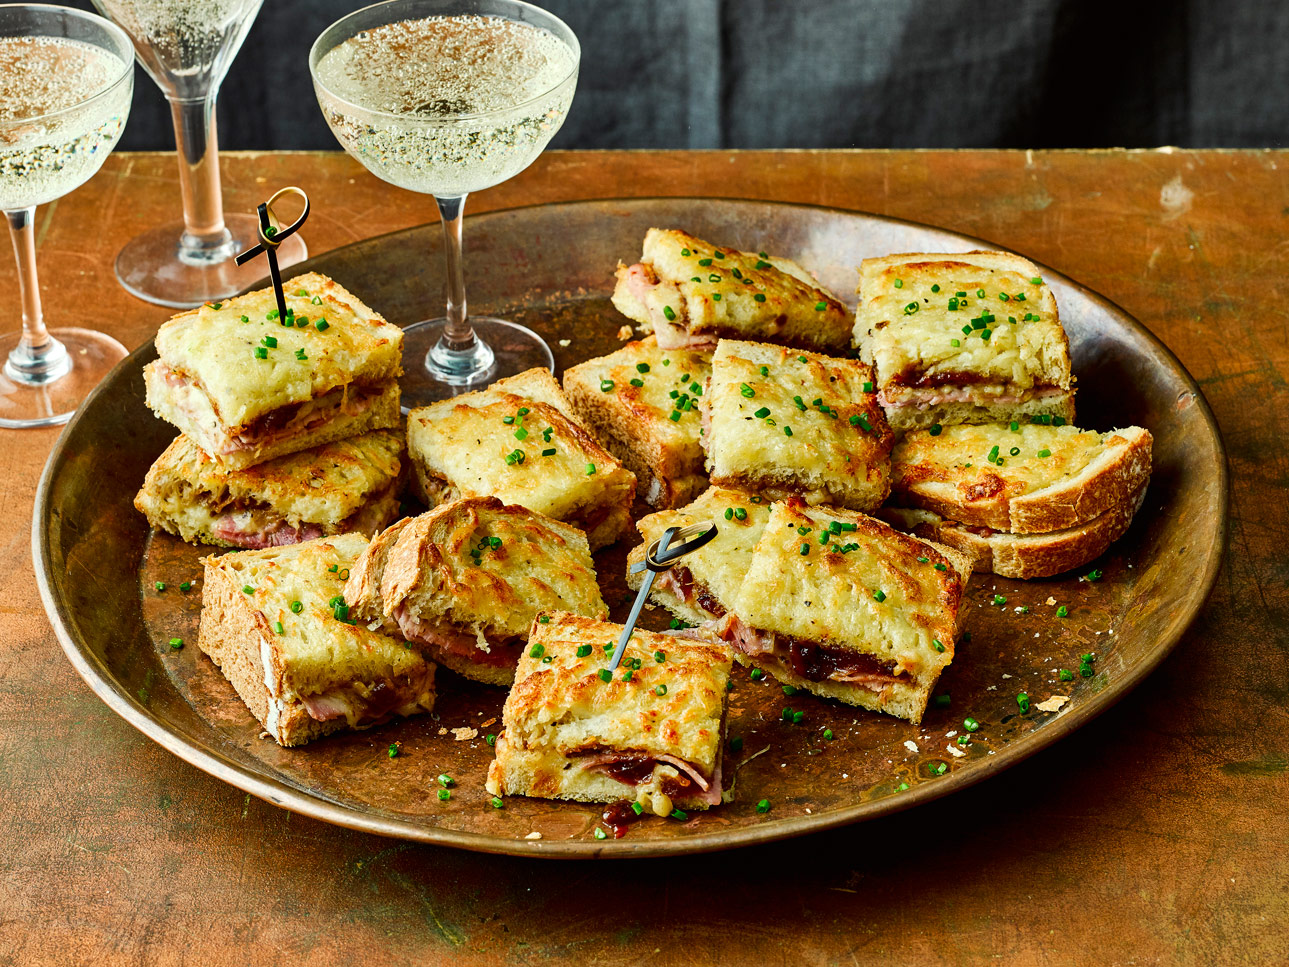 Croque-Monsieurs-with-Tracklements-Green-Tomato-Chutney-and-Smooth-Dijon-Mustard---landscape-no-holly.jpg